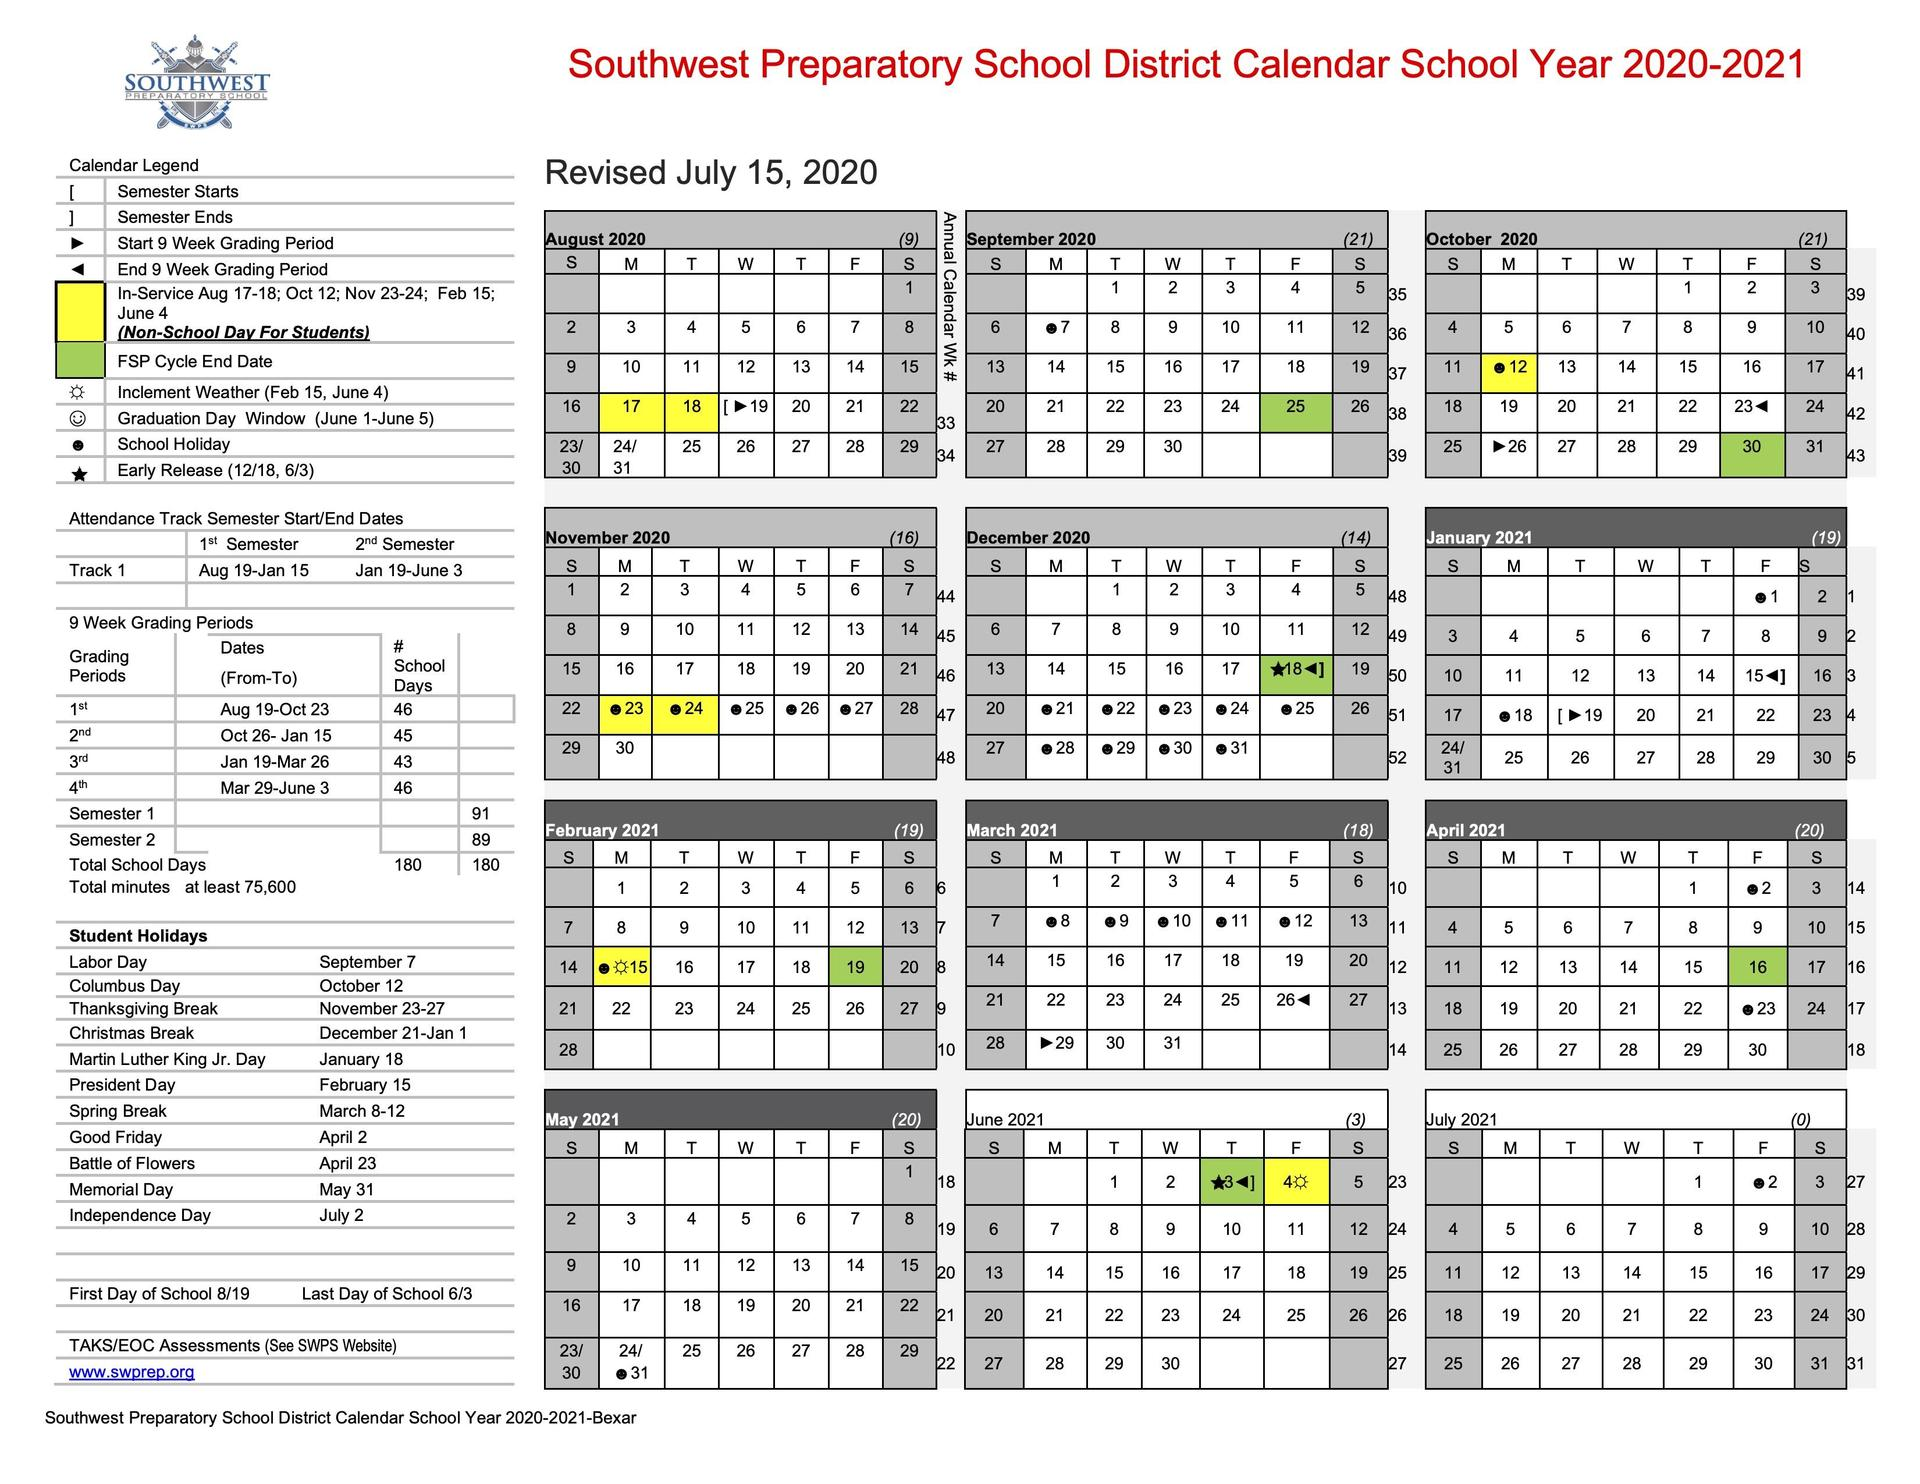 Neisd 2021-2022 Calendar San Antonio School Calendars and COVID Resources, Updated for 2020